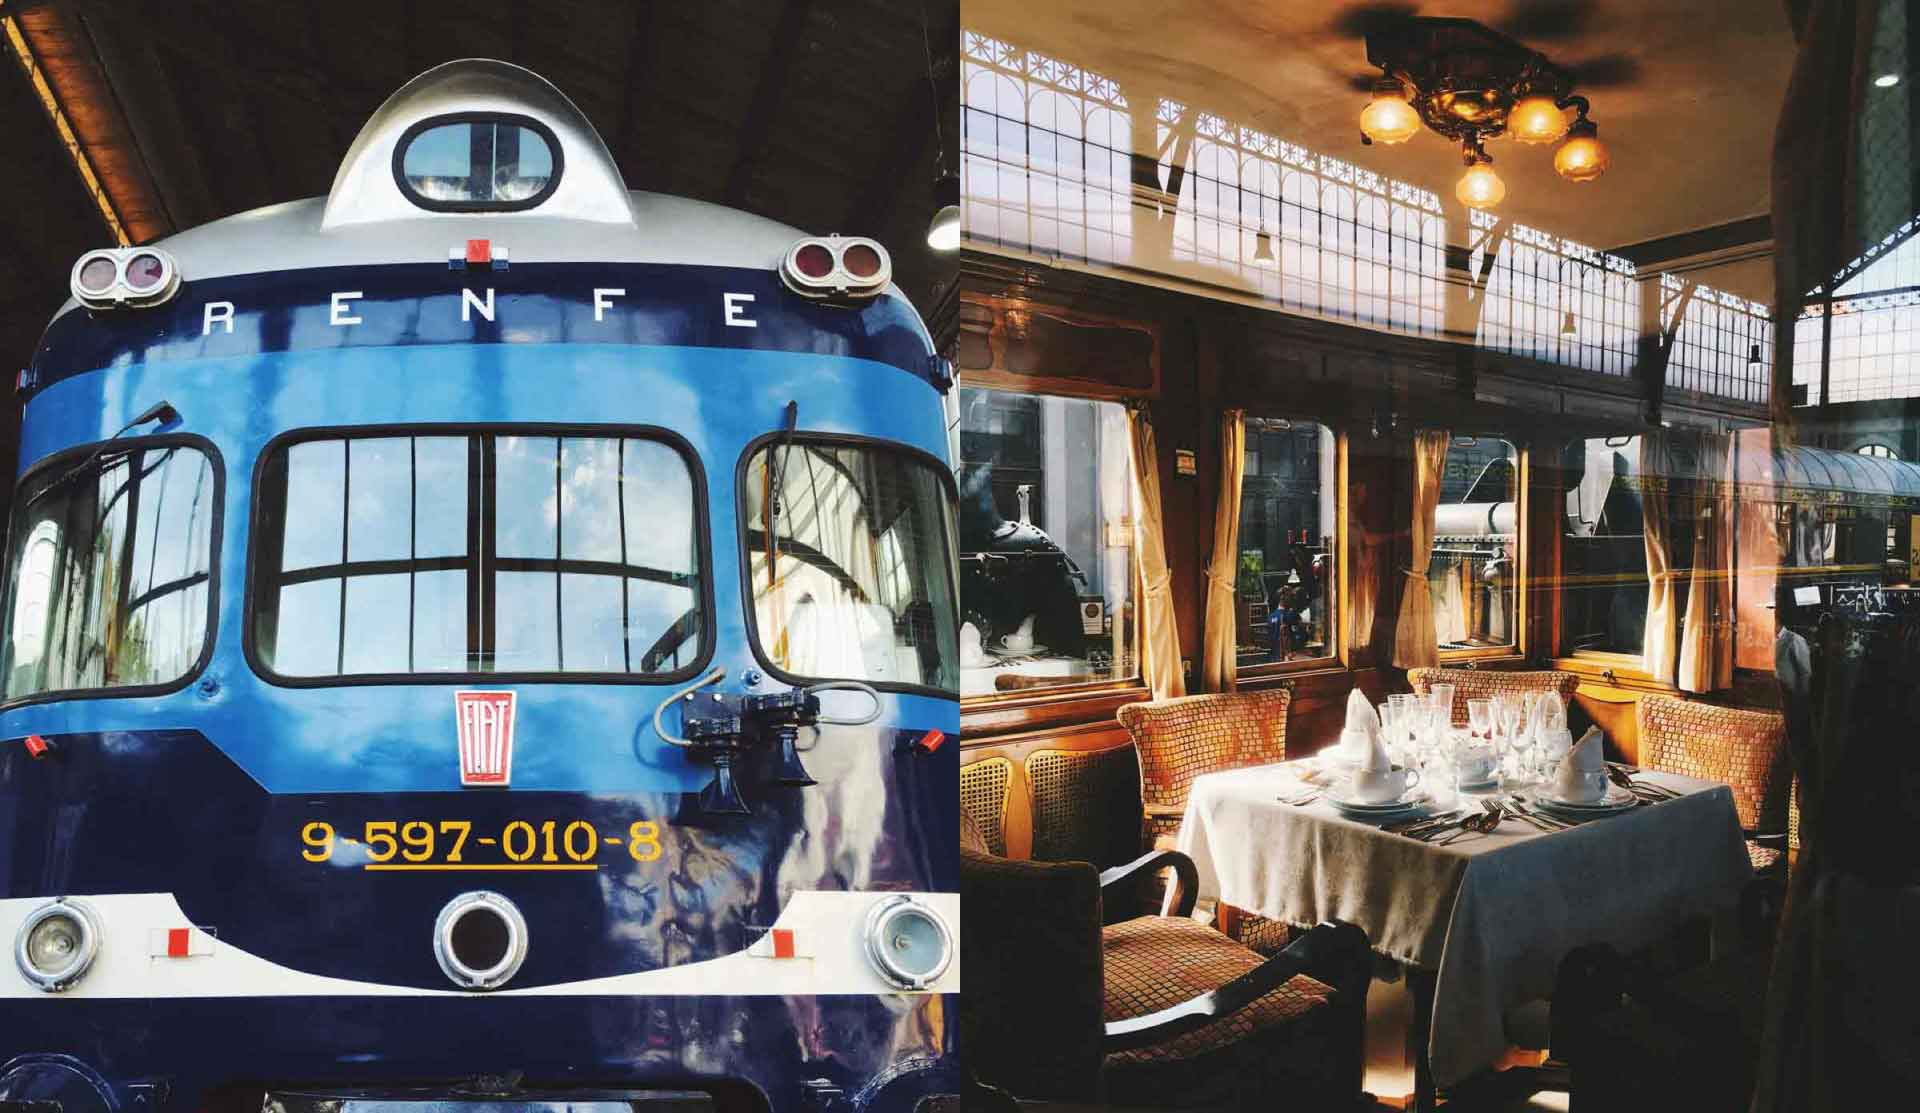 A nice colourful collection of trains will take you traveling back in time (: